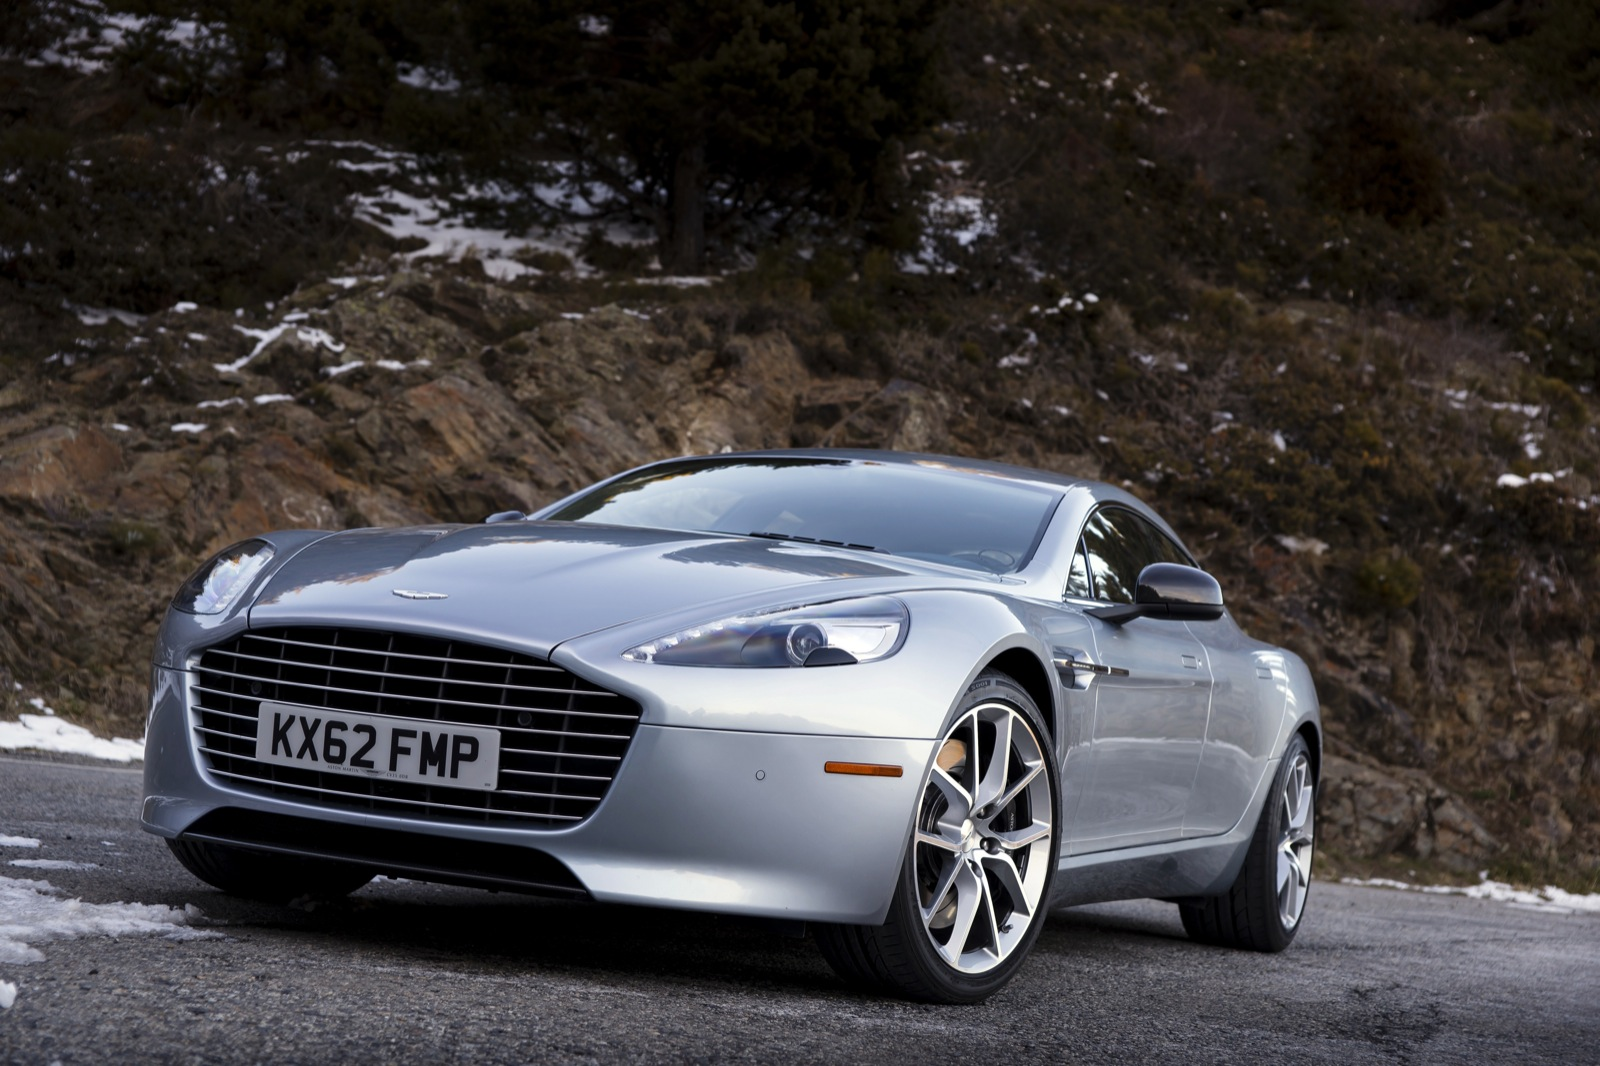 2014 Aston Martin Rapide Review, Ratings, Specs, Prices